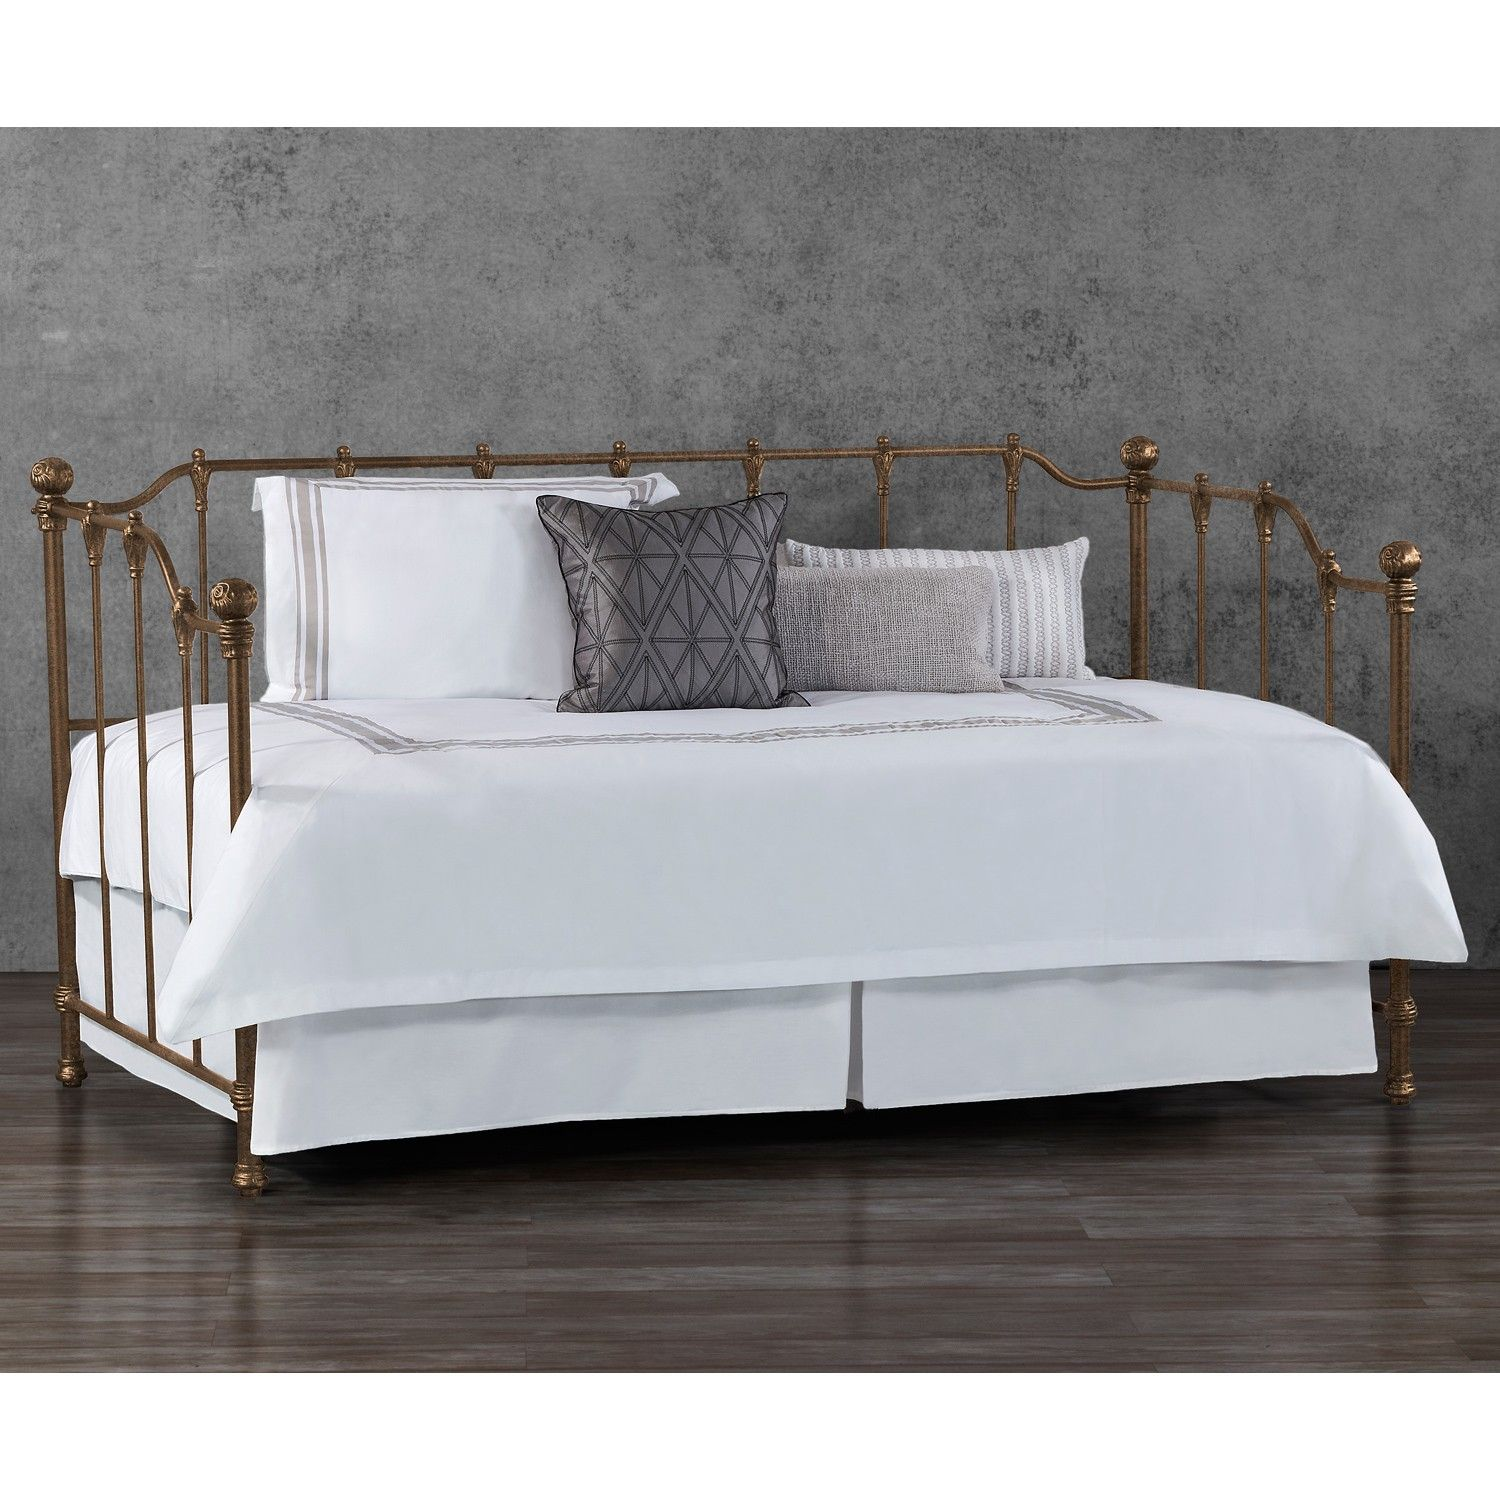 Hannah Iron Daybed by Wesley Allen - Aged Copper Brown | ProDuCTs I ...